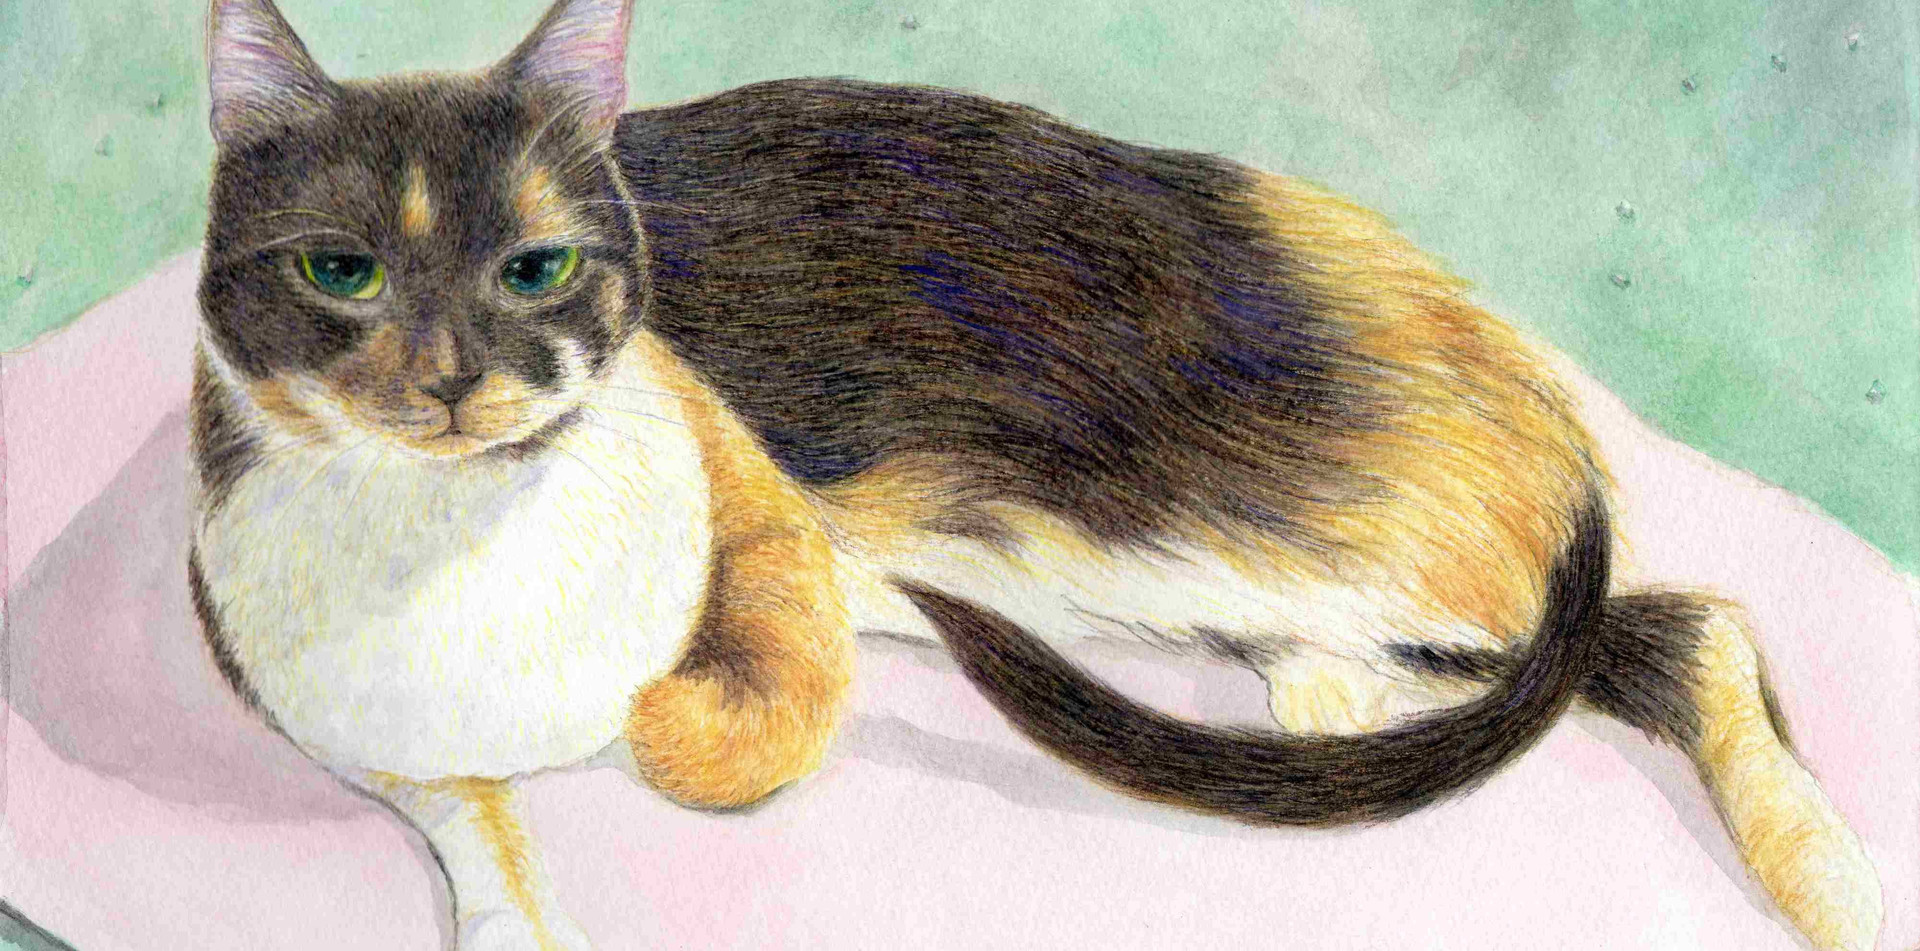 510 - A Calico Cat On The Pink Mat